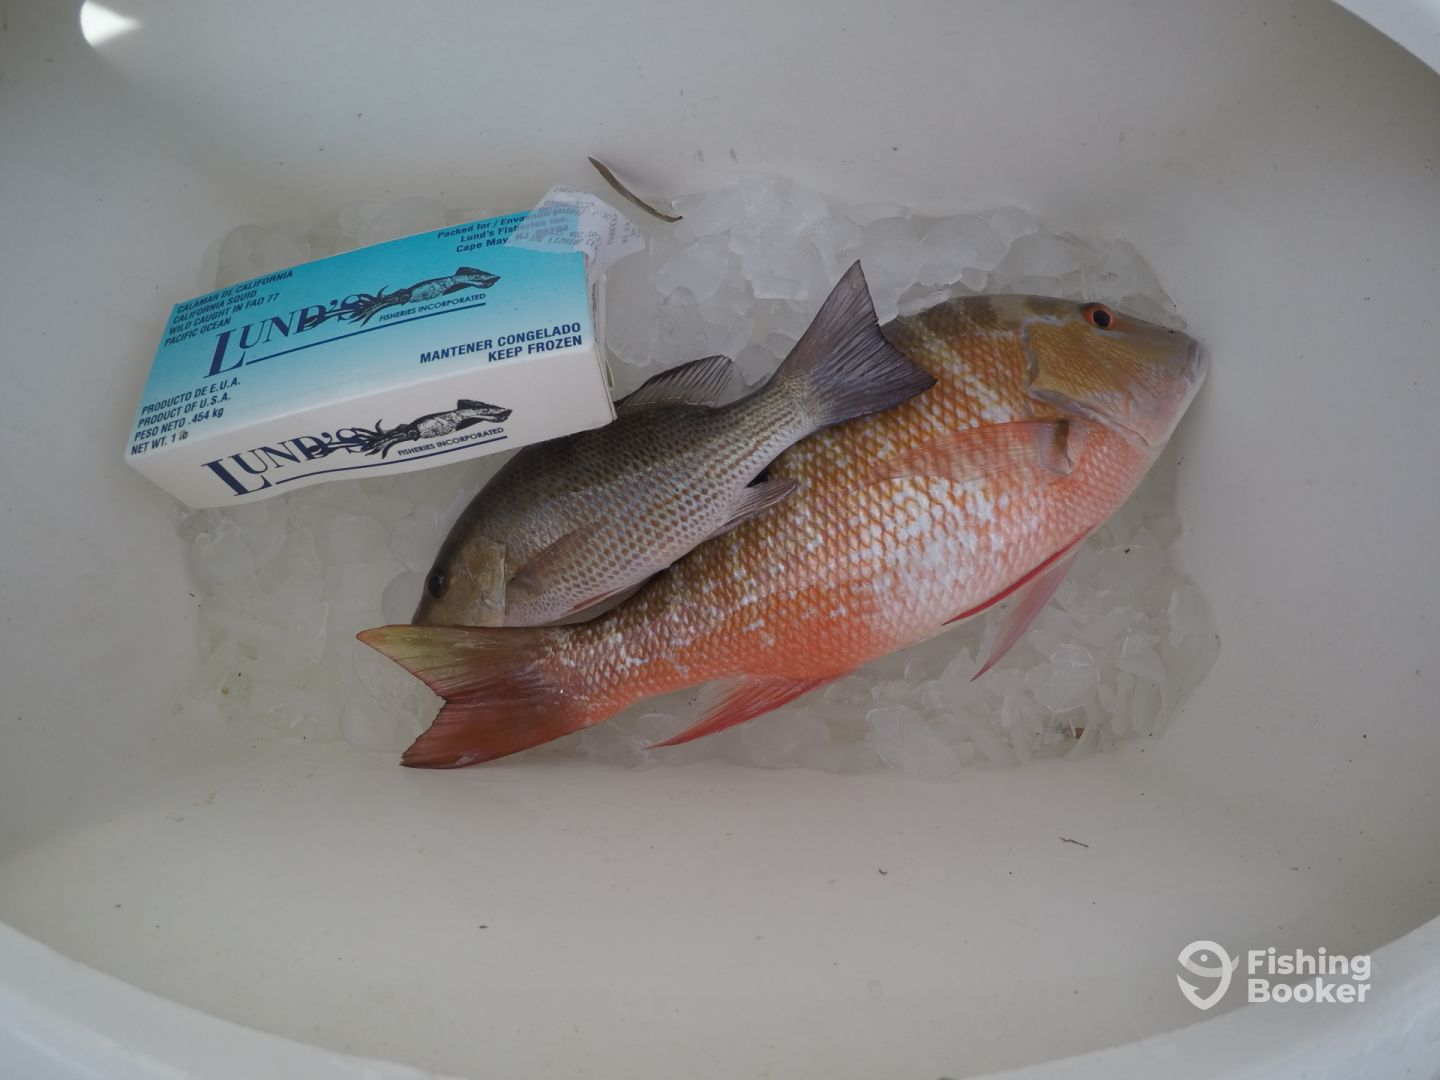 10.5 inch Mangrove and 17 inch Mutton Snapper.